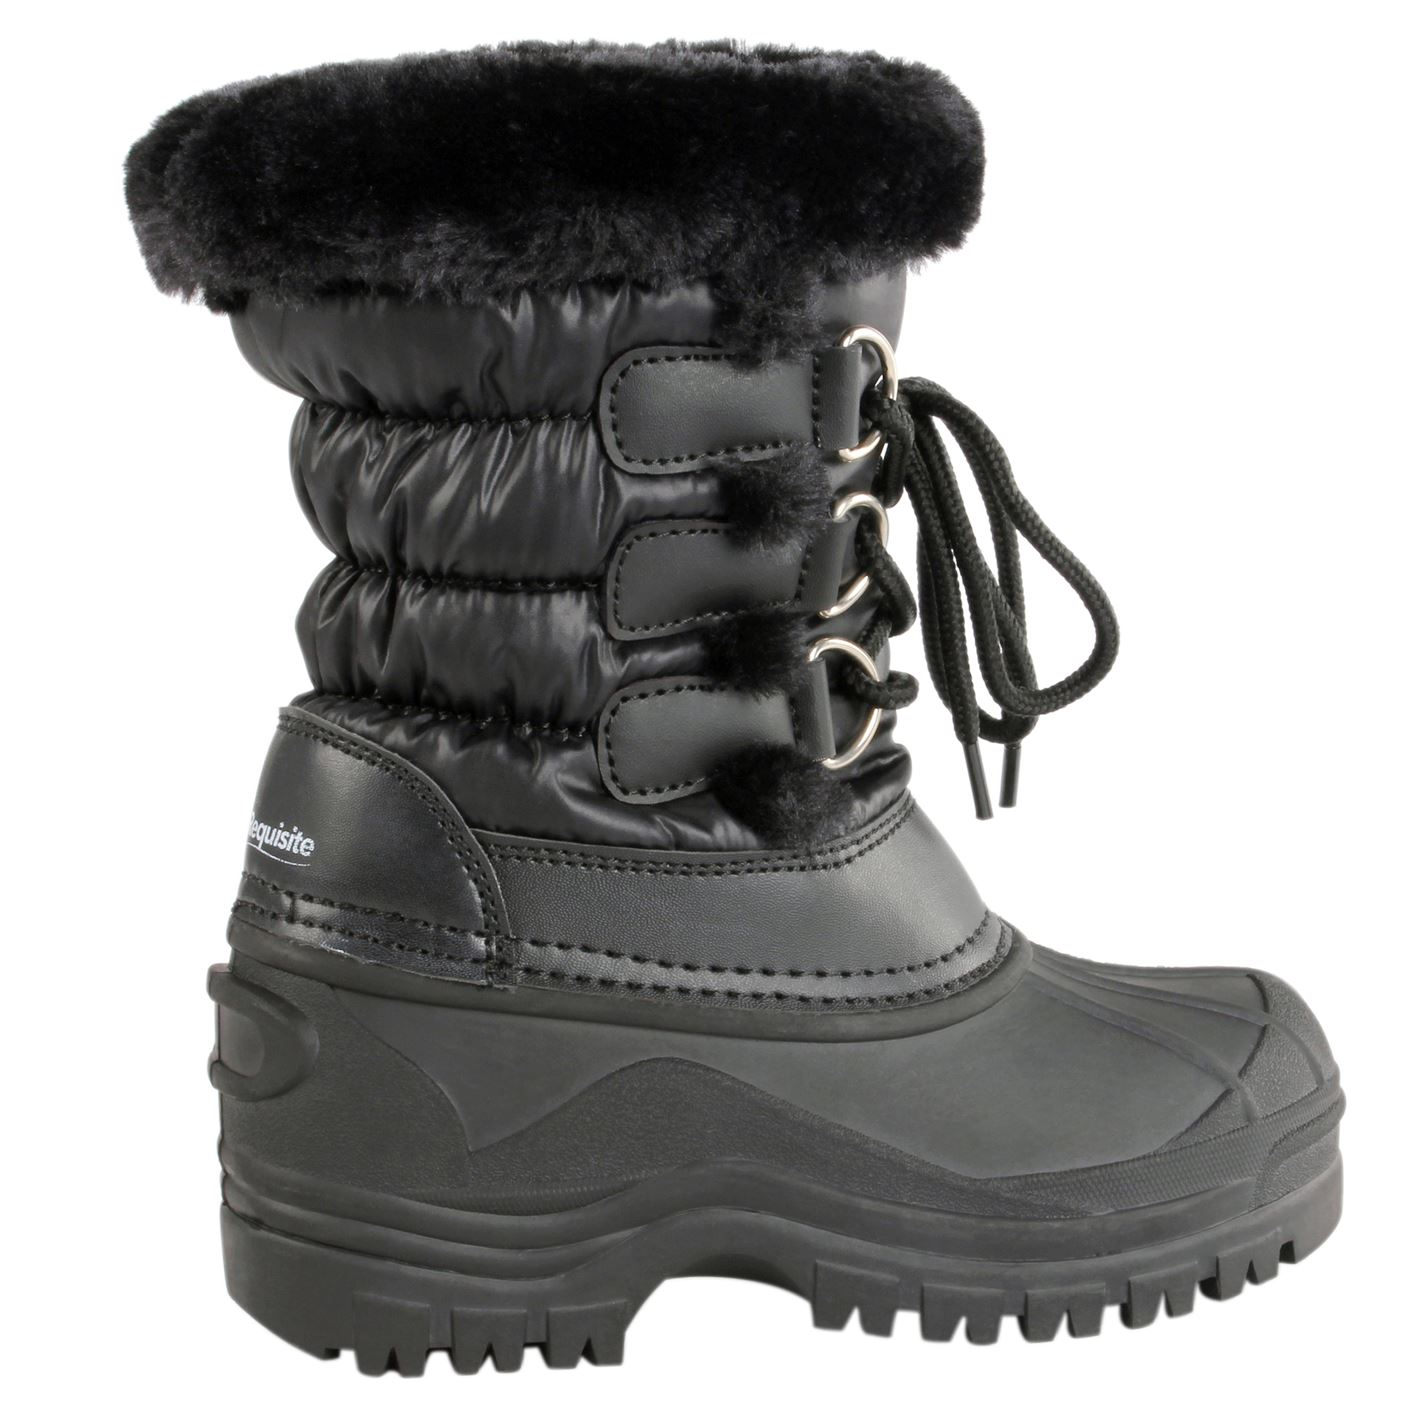 Requisite Lace Front Mucker Boot Child Black